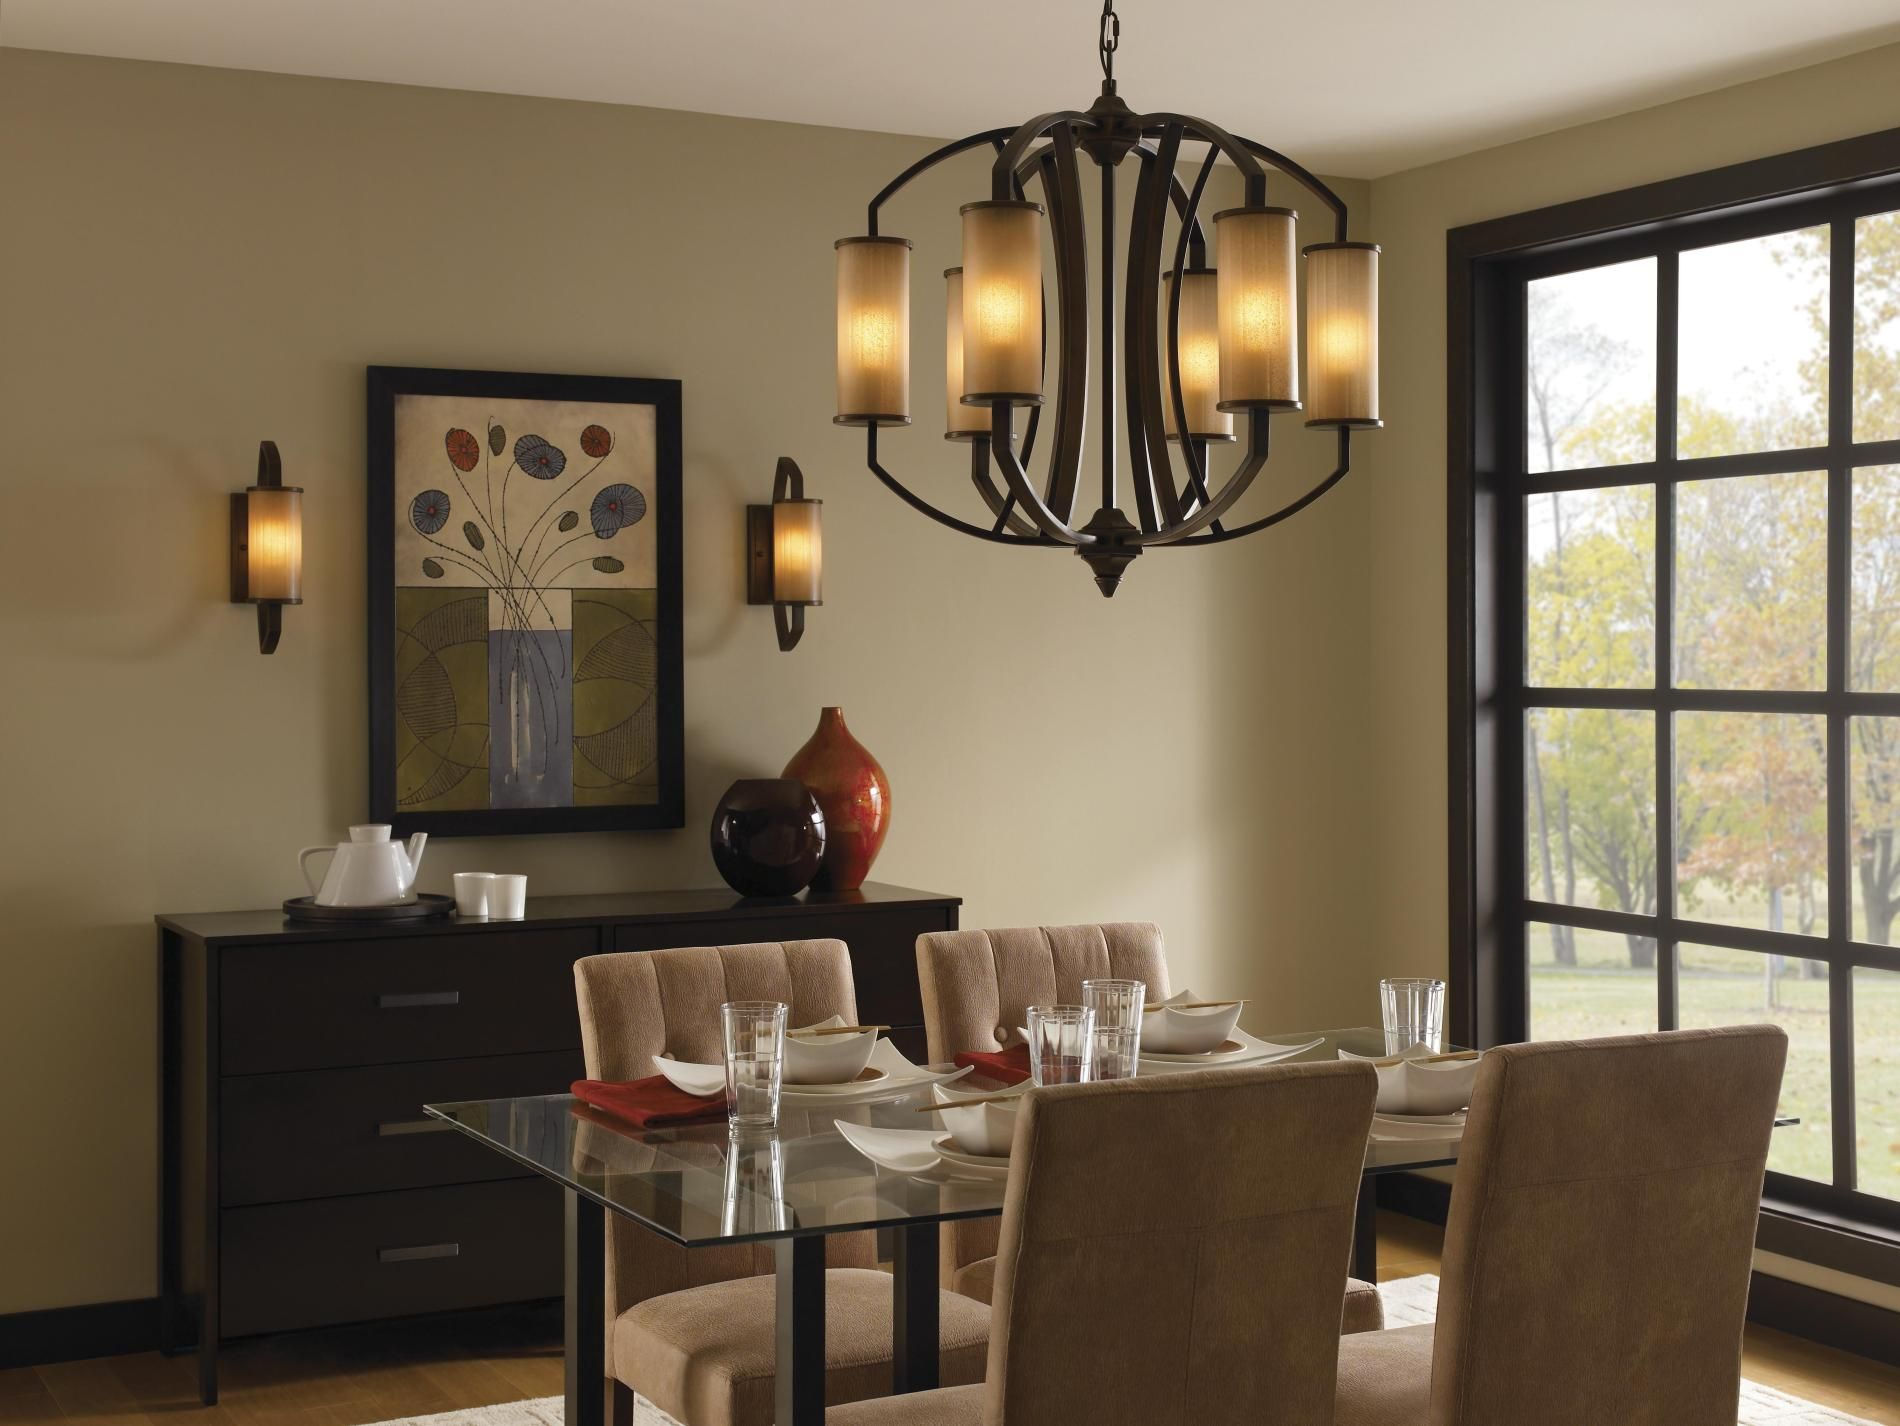 This Murray Feiss Logan Bronze 6 Light Chandelier Features Aged Vellum Glass Combined With A Pecan Tan Dining RoomsRustic